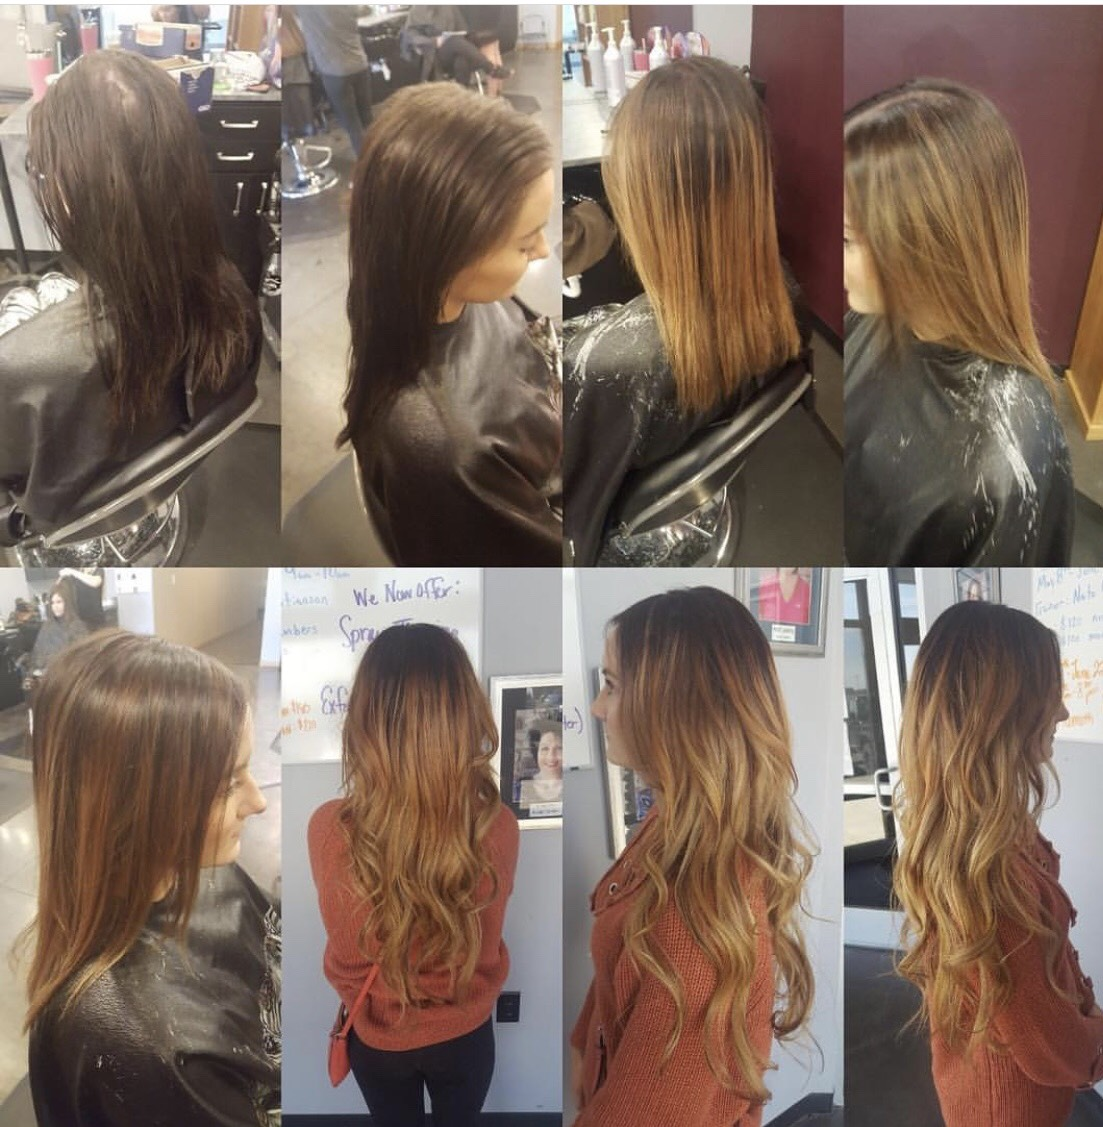 Hair Extensions - Pricing upon consultation for actual cost of the hair depending upon color and length.Installation of Extensions……………………………….$250+